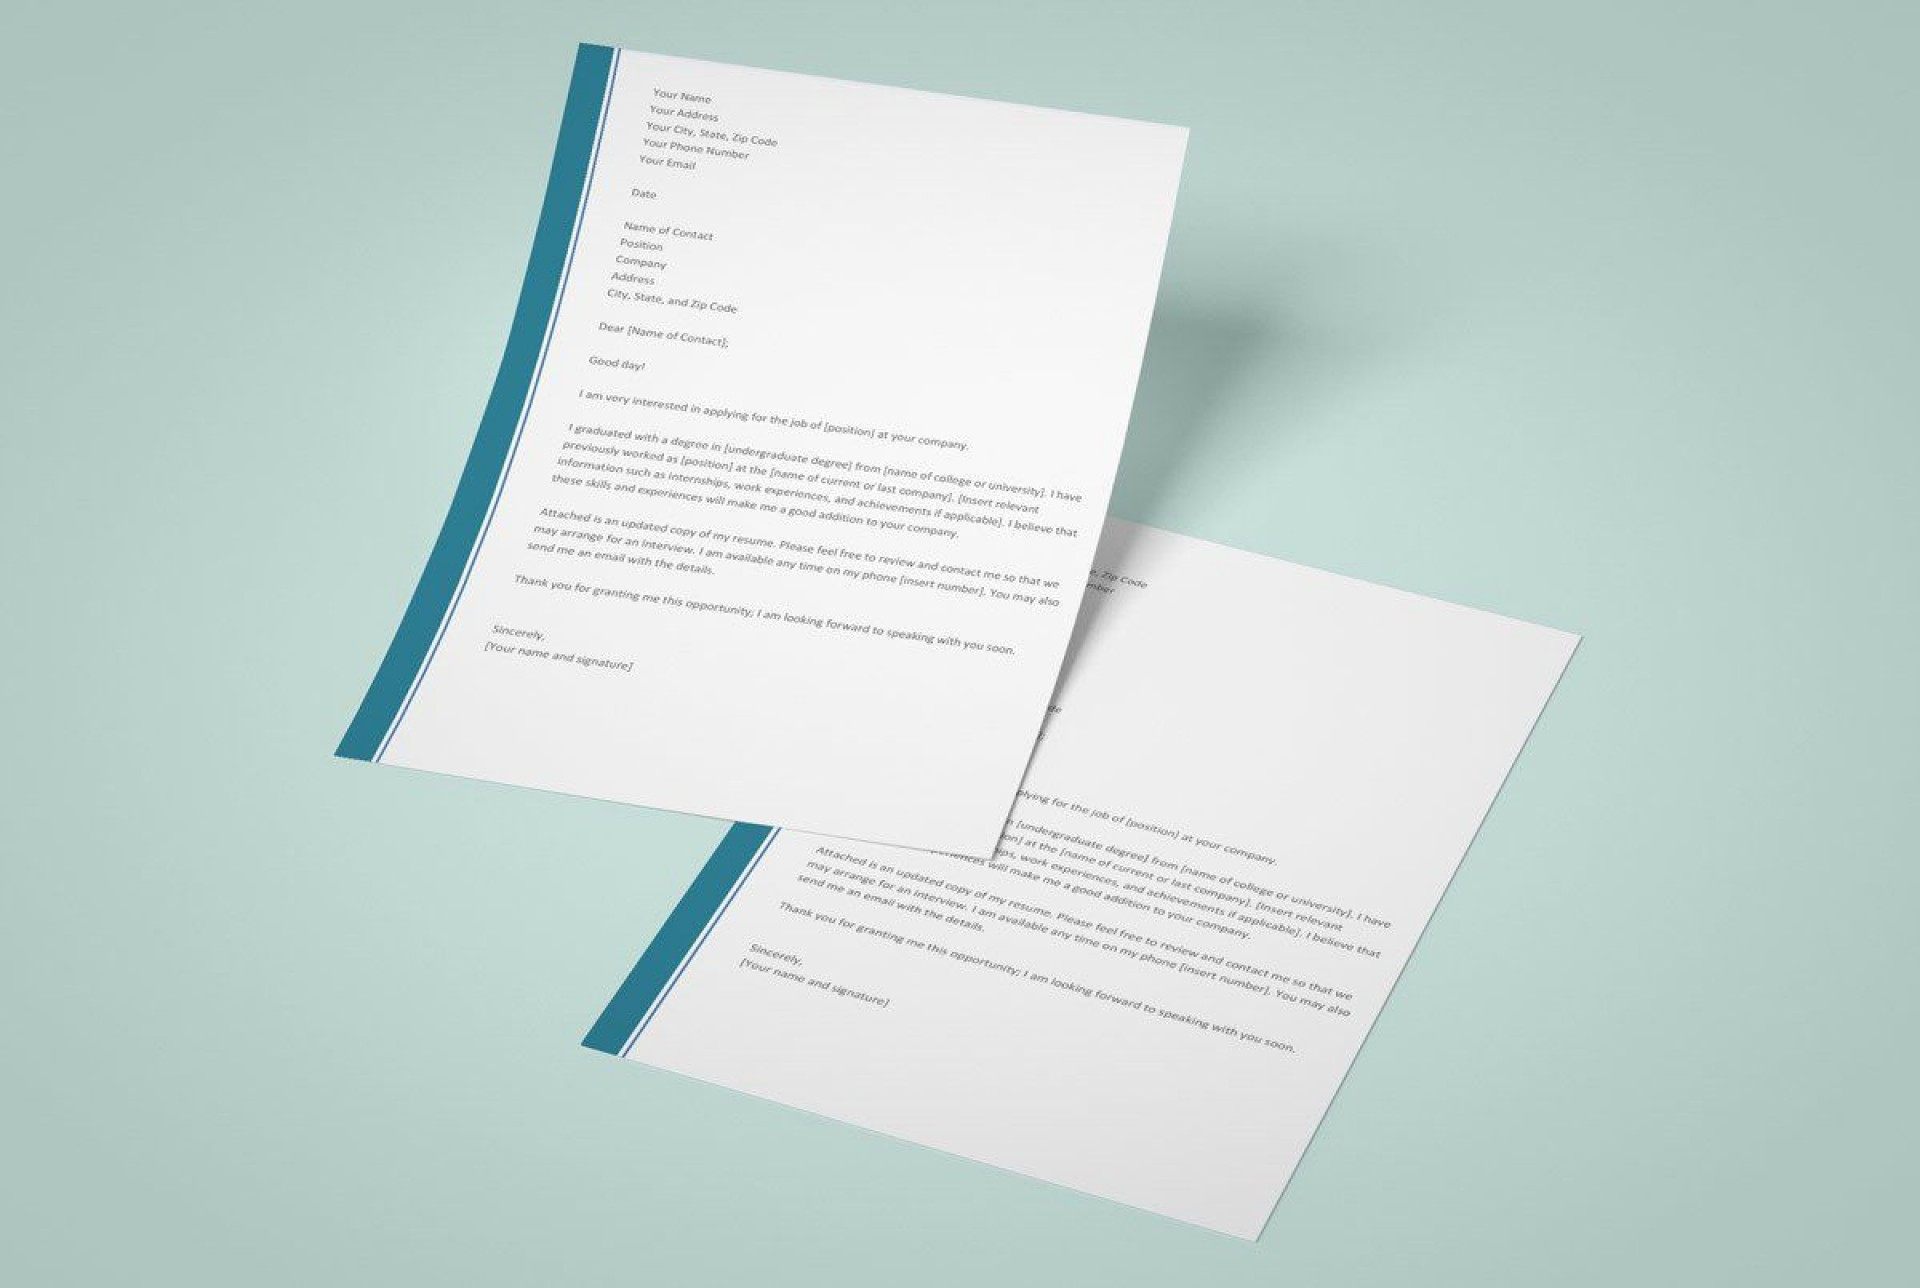 004 Astounding Microsoft Resume Cover Letter Template Free Highest Clarity 1920